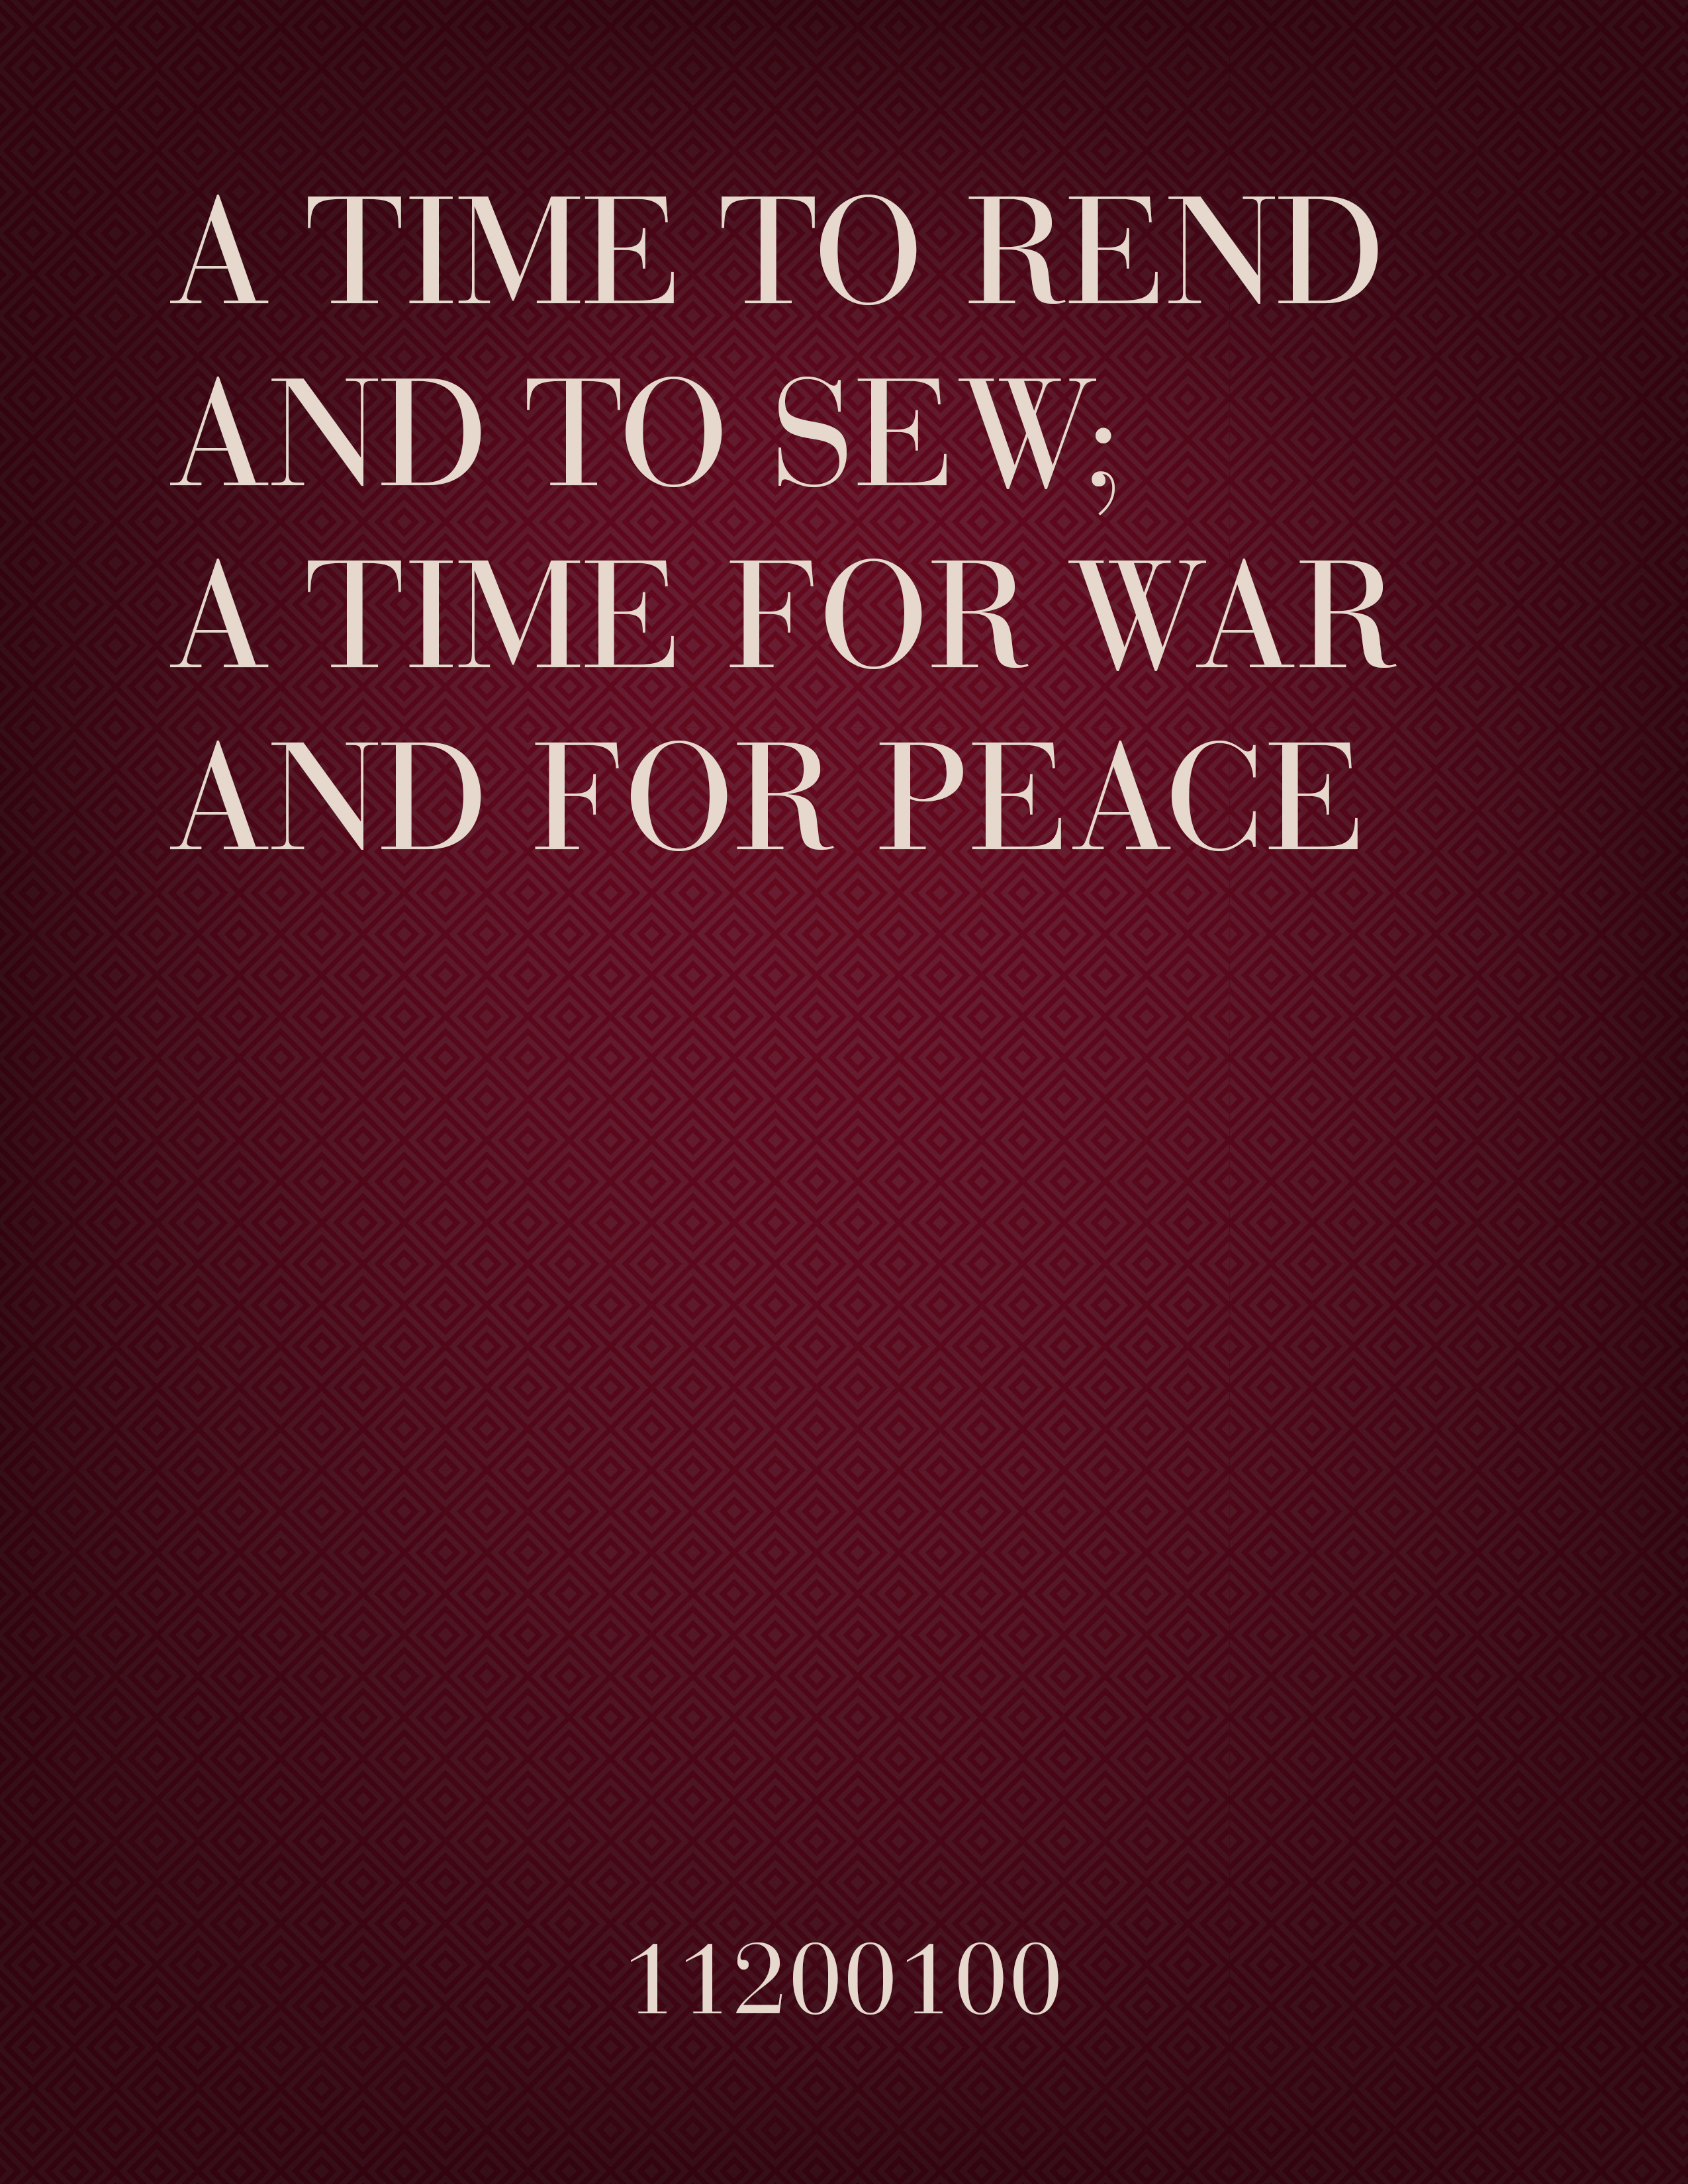 A time to rend and to sew; A time for war and for peace.